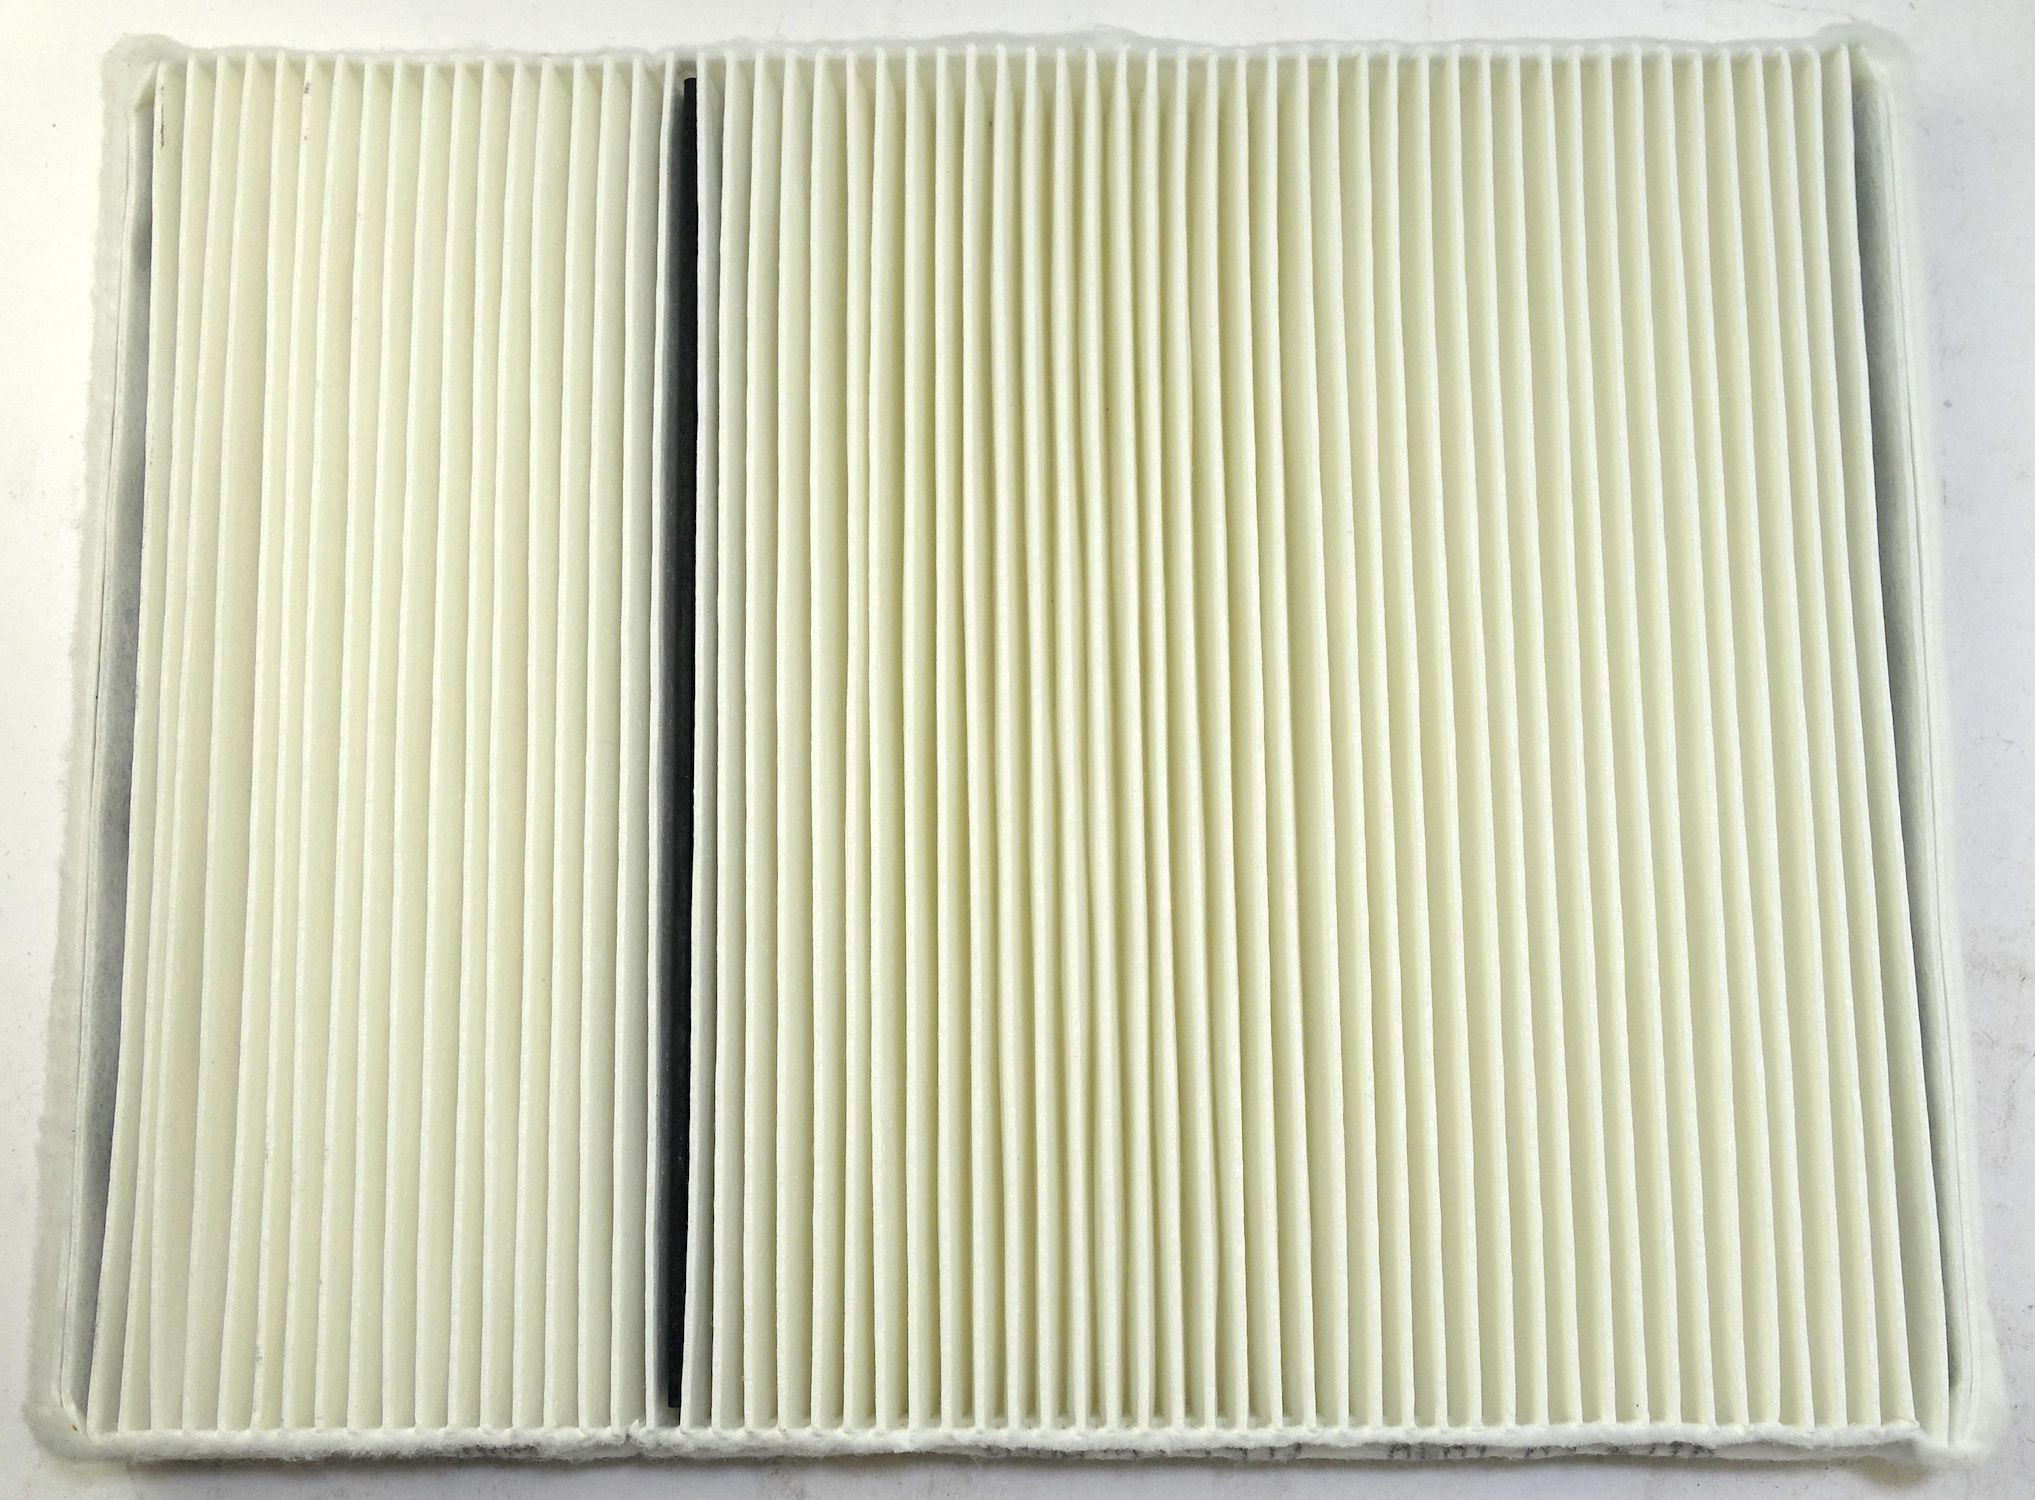 ** New OEM ACDelco 40 Pack Cabin Air Filter Passenger Compartment CF138 15811562 - image 6